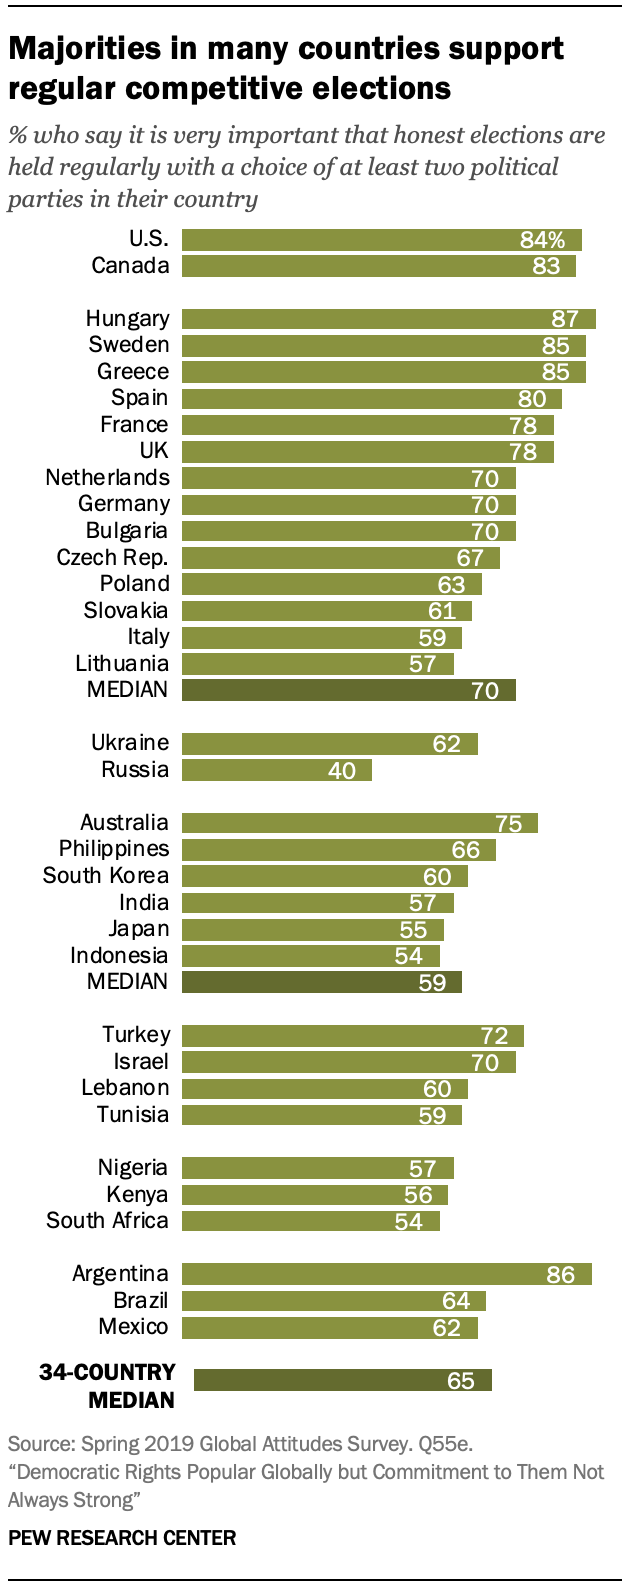 Chart shows majorities in many countries support regular competitive elections